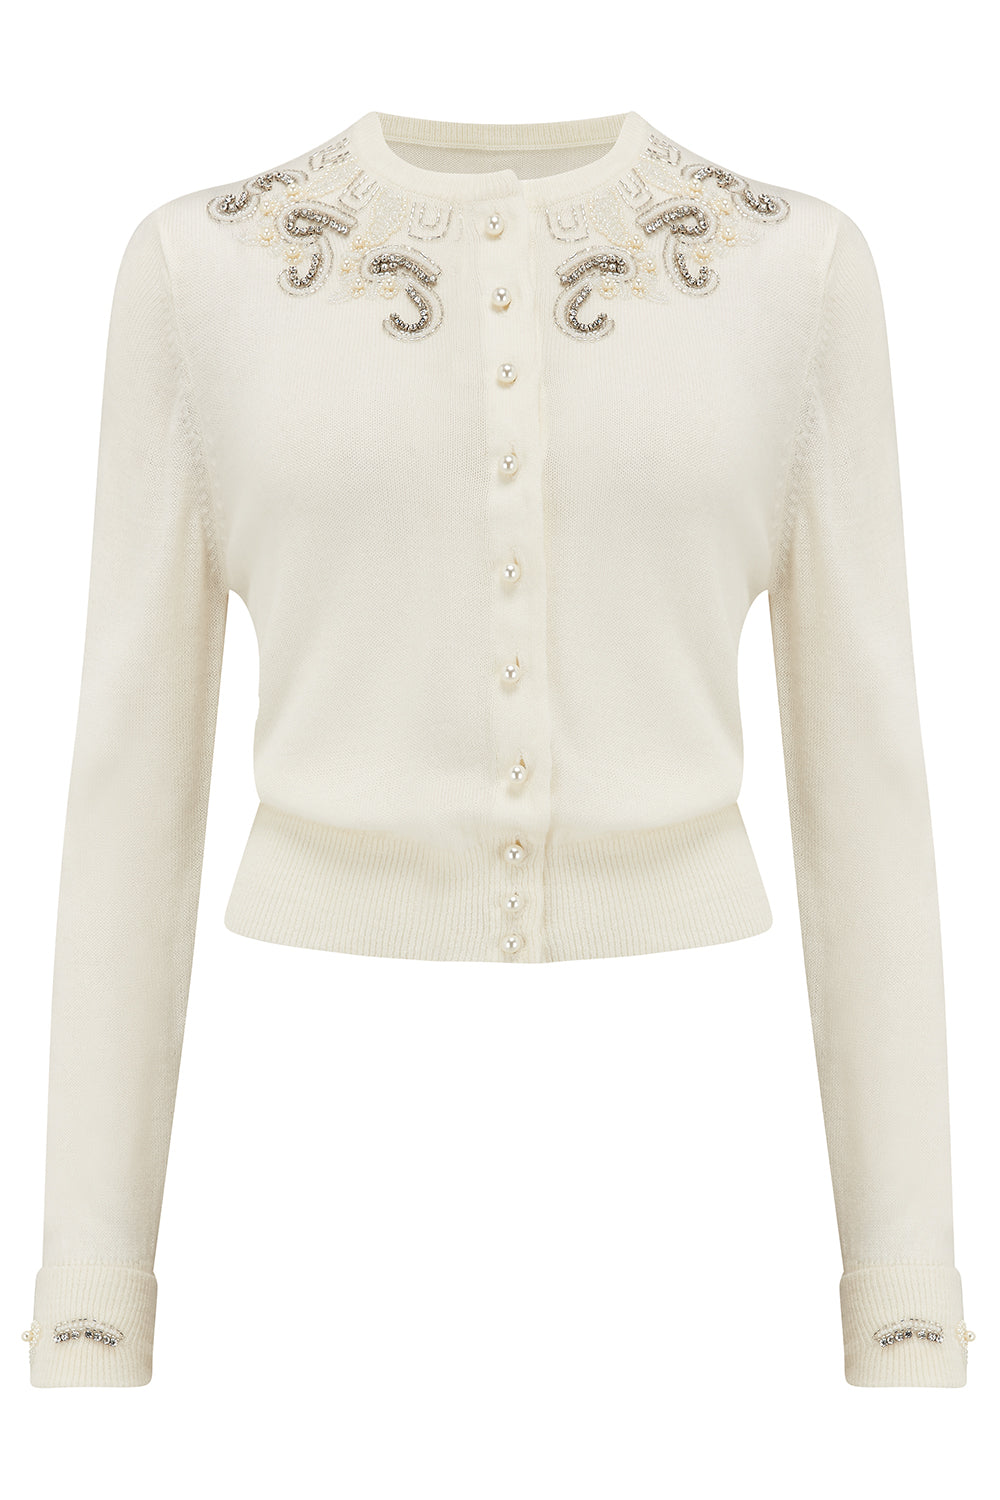 1940s Teenage Fashion: Girls The Beaded Cardigan in Cream Stunning 1940s Vintage Style £69.00 AT vintagedancer.com